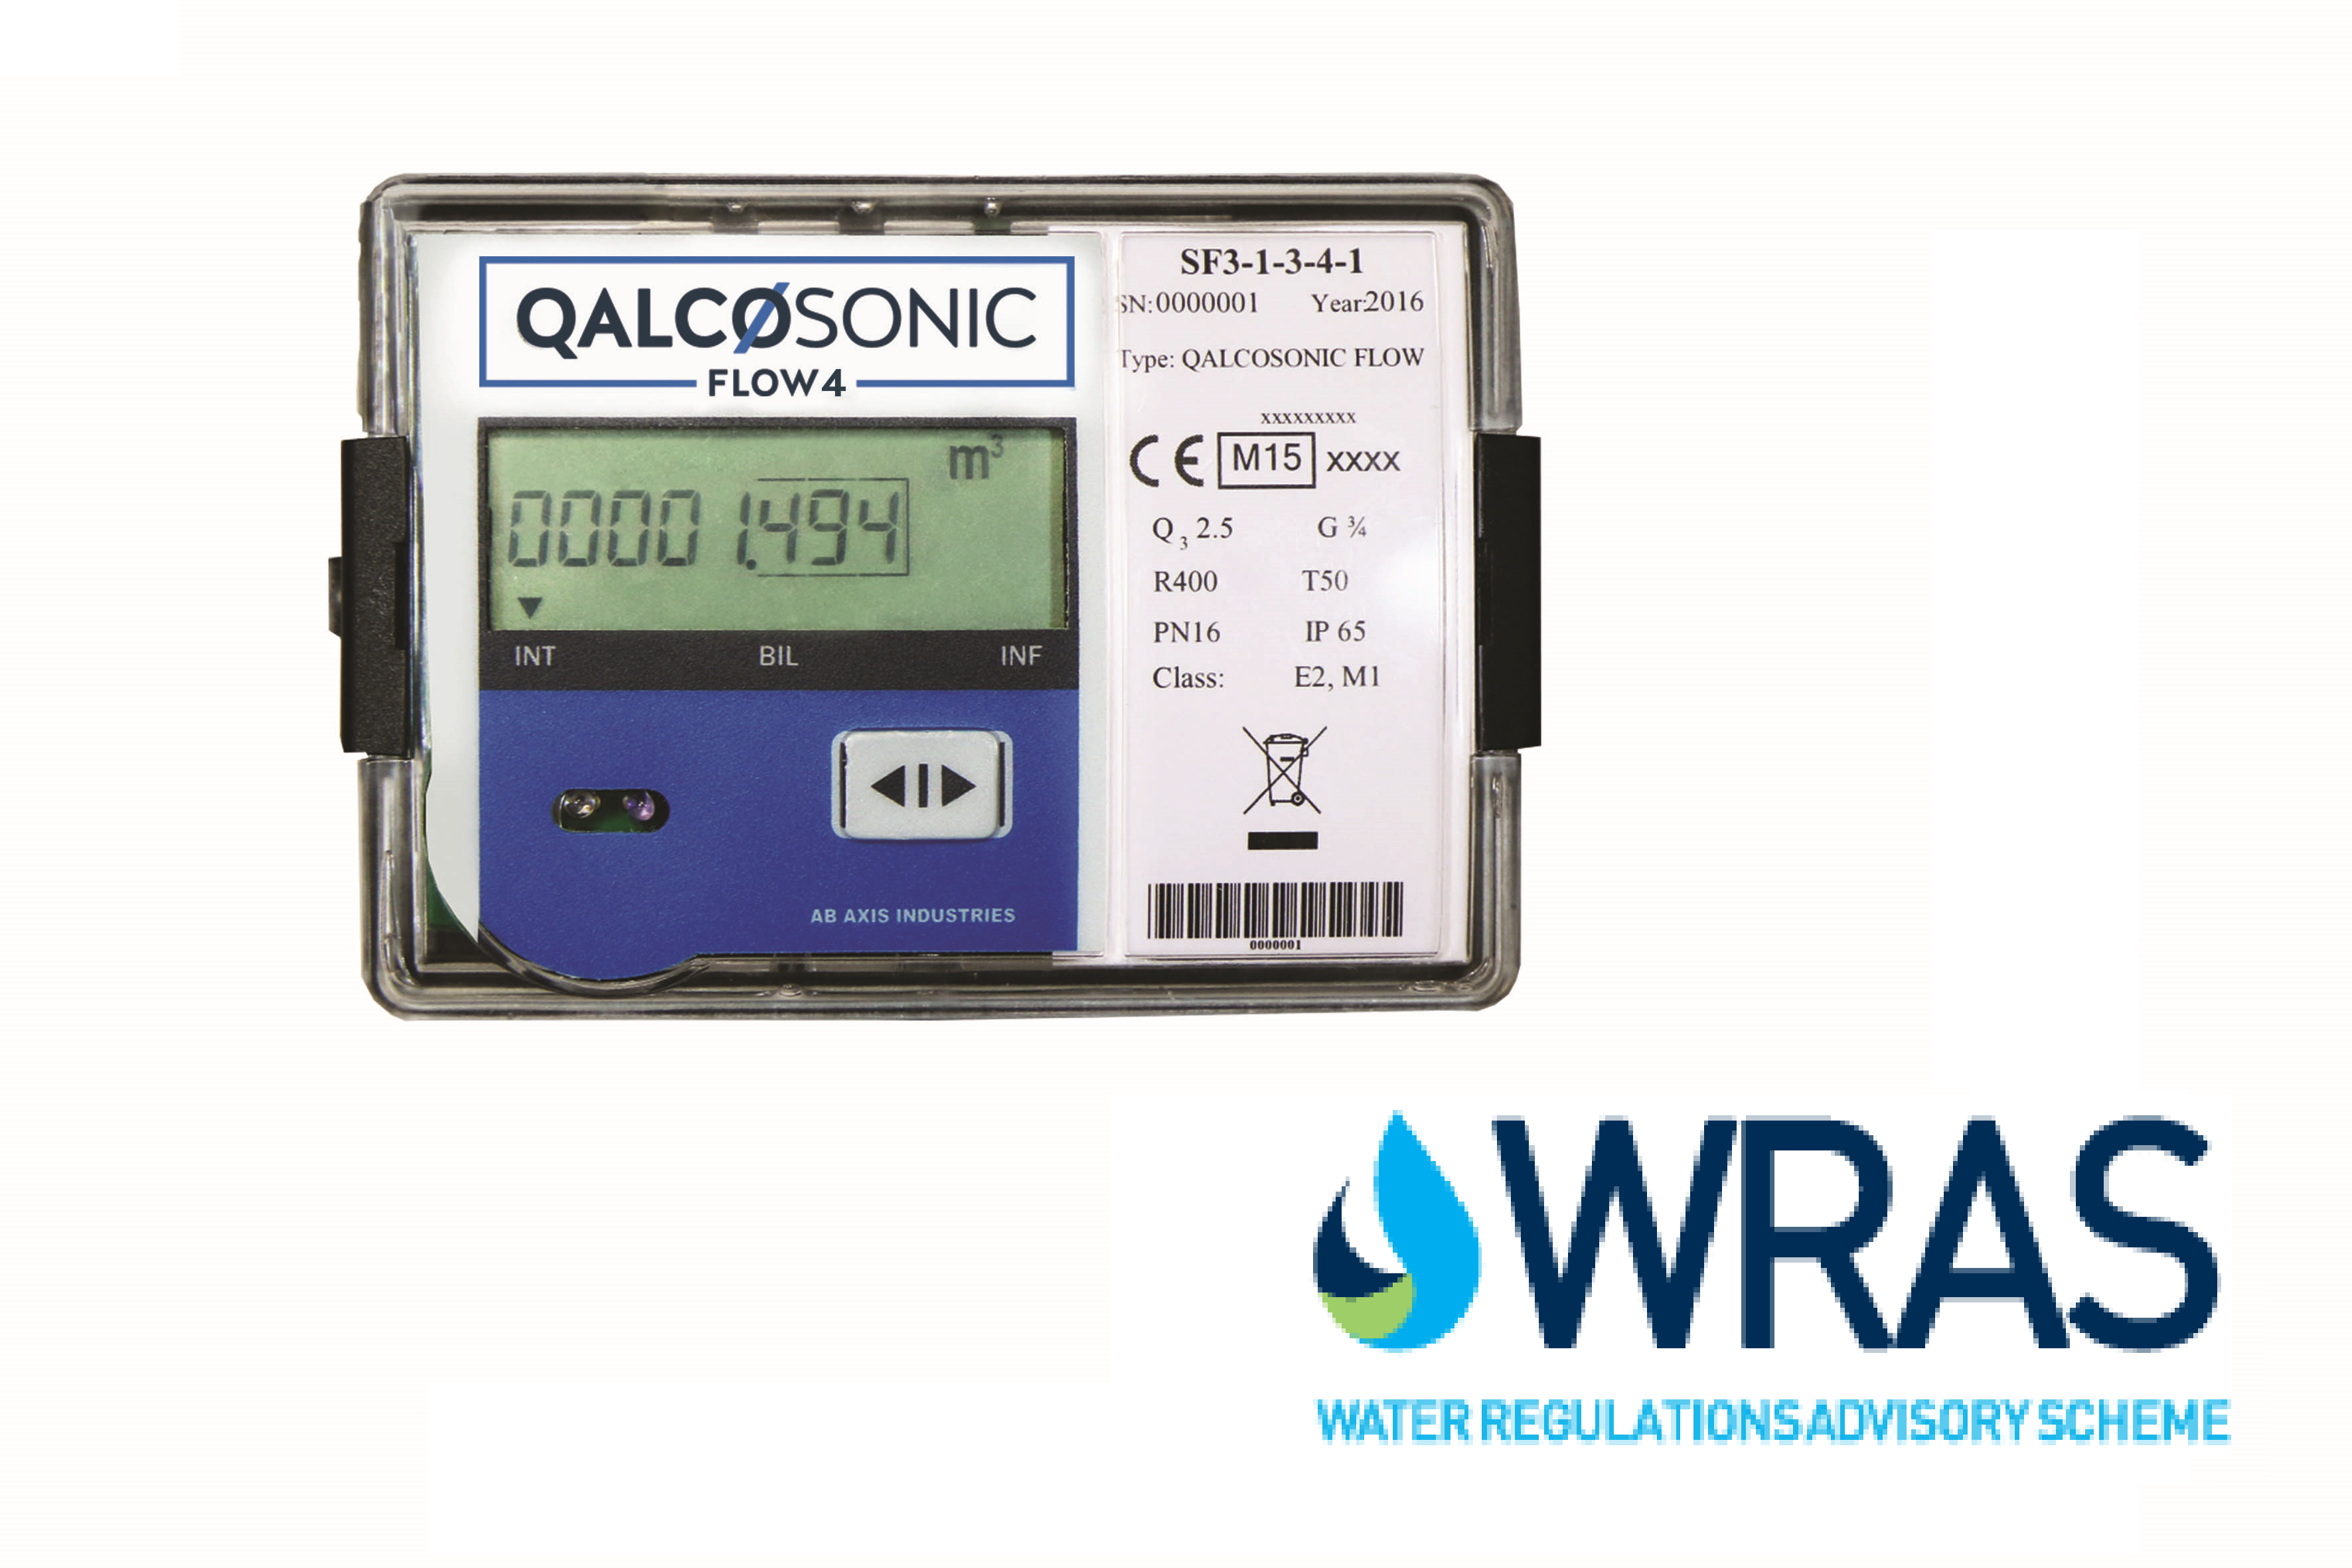 Qalcosonic Flow 4 Ultrasonic Water Meter Dn20 3 Q3 Mid Q Approved